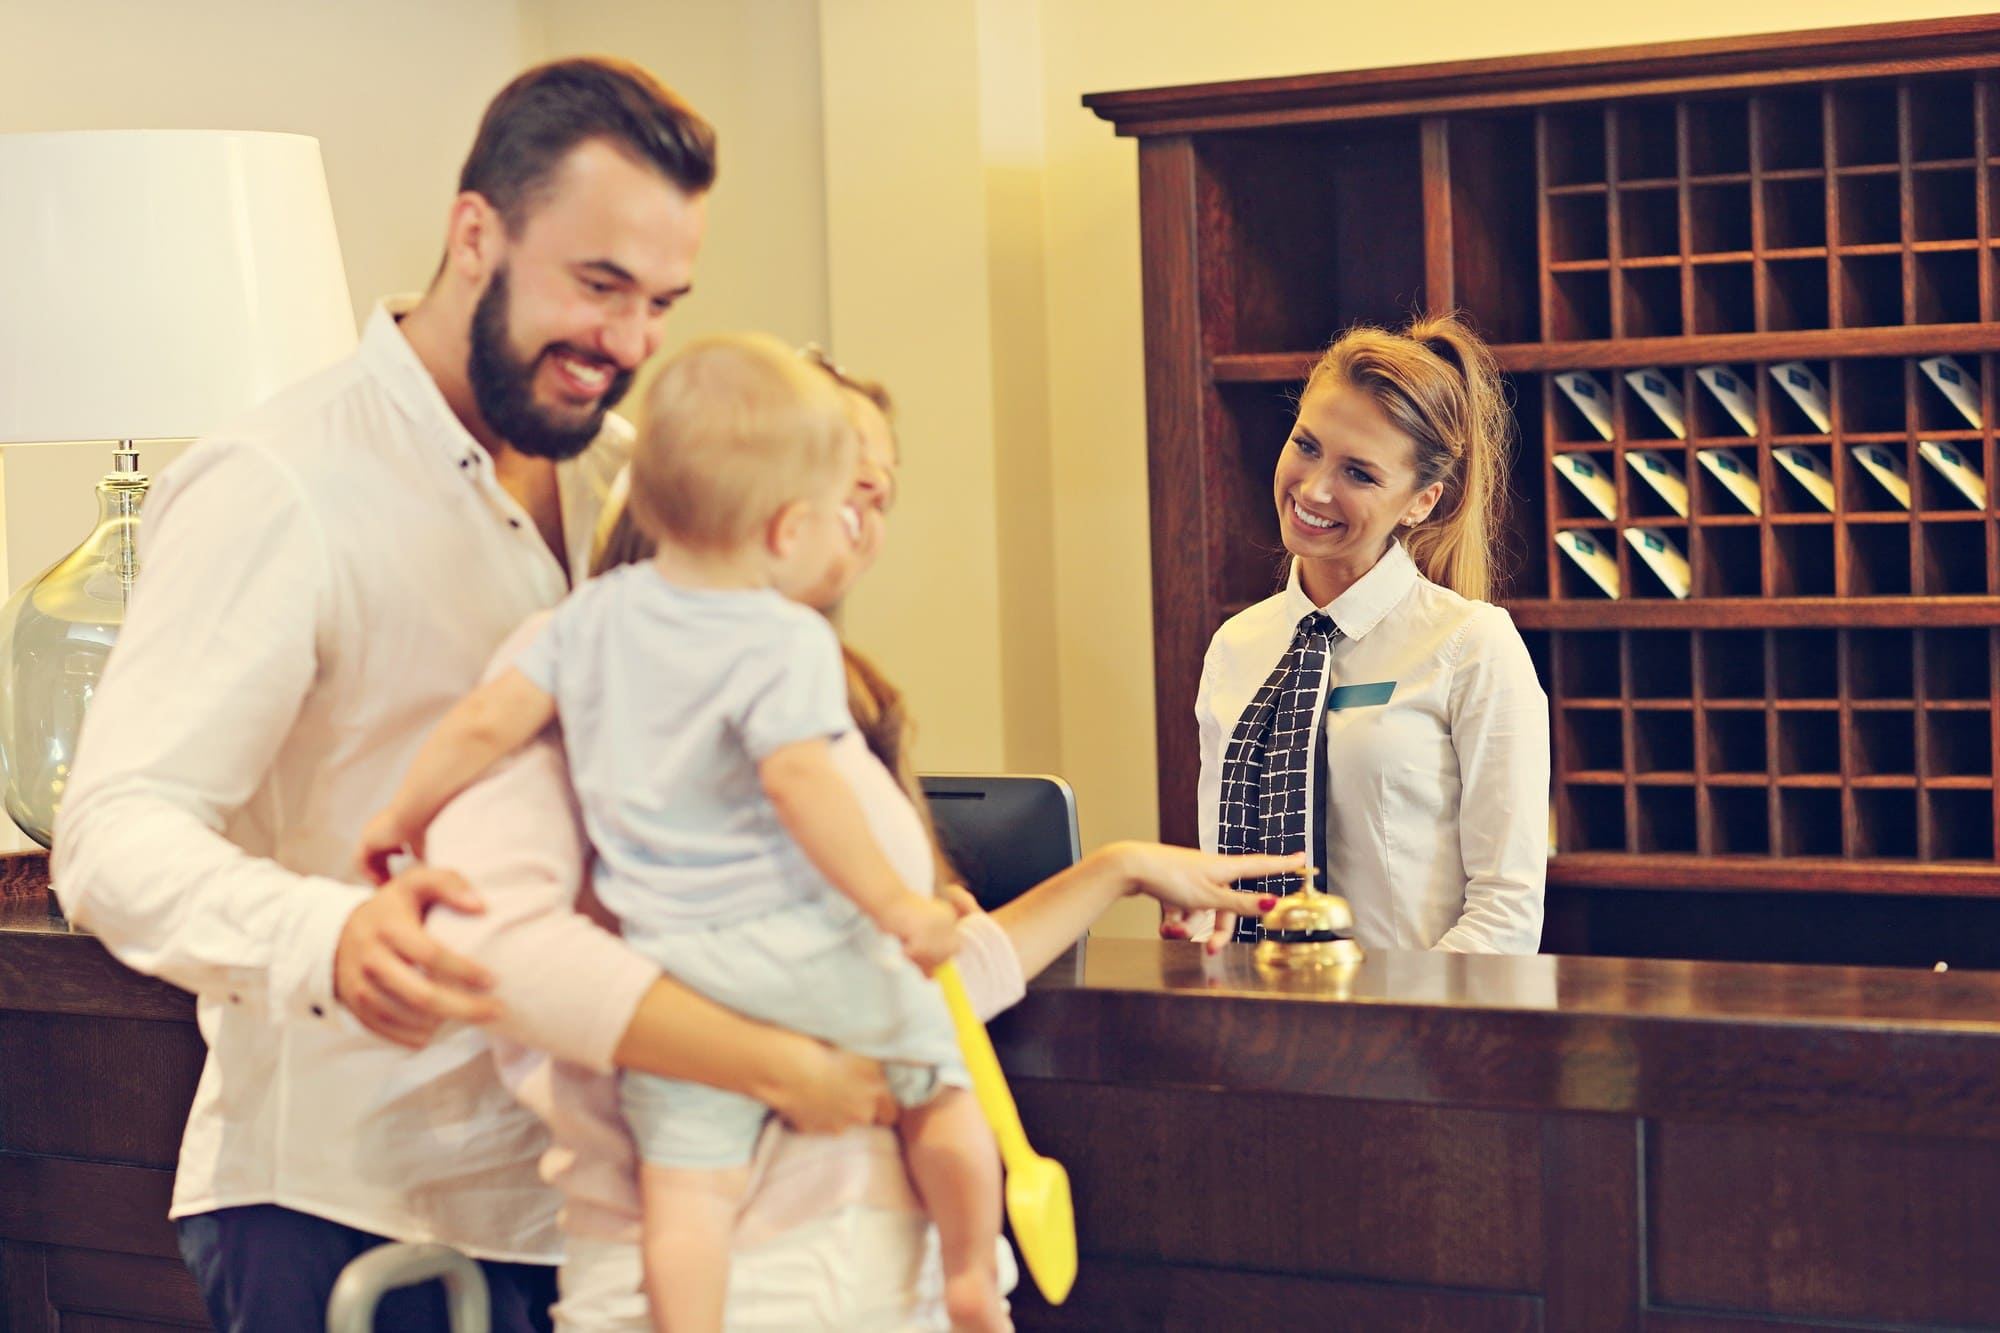 Many hotels welcome babies and children at no charge